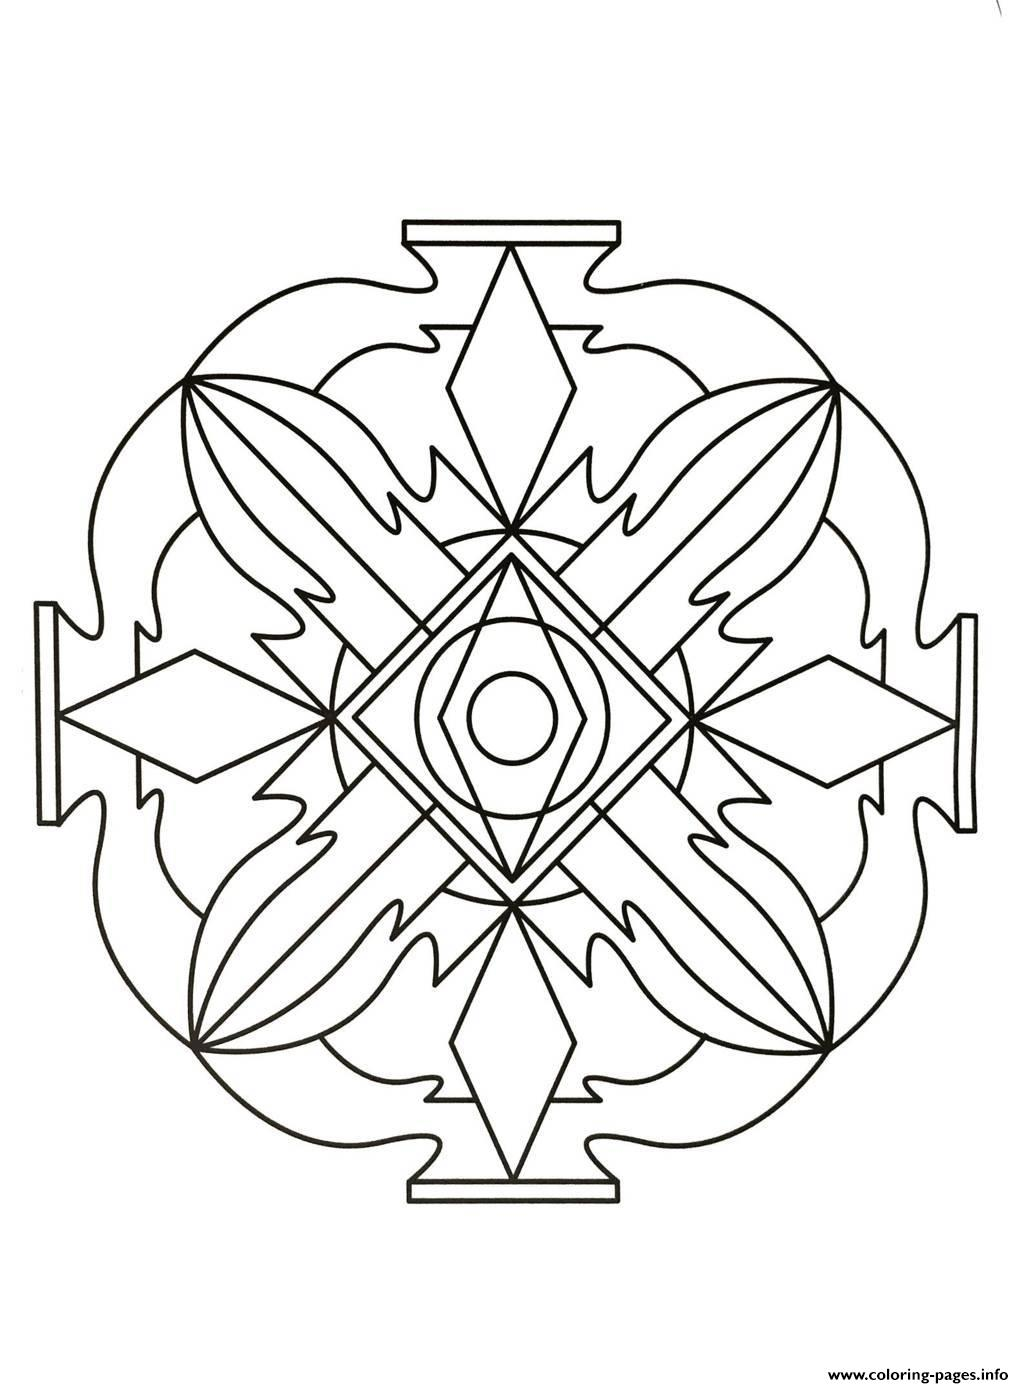 Mandalas To Download For Free 6  coloring pages